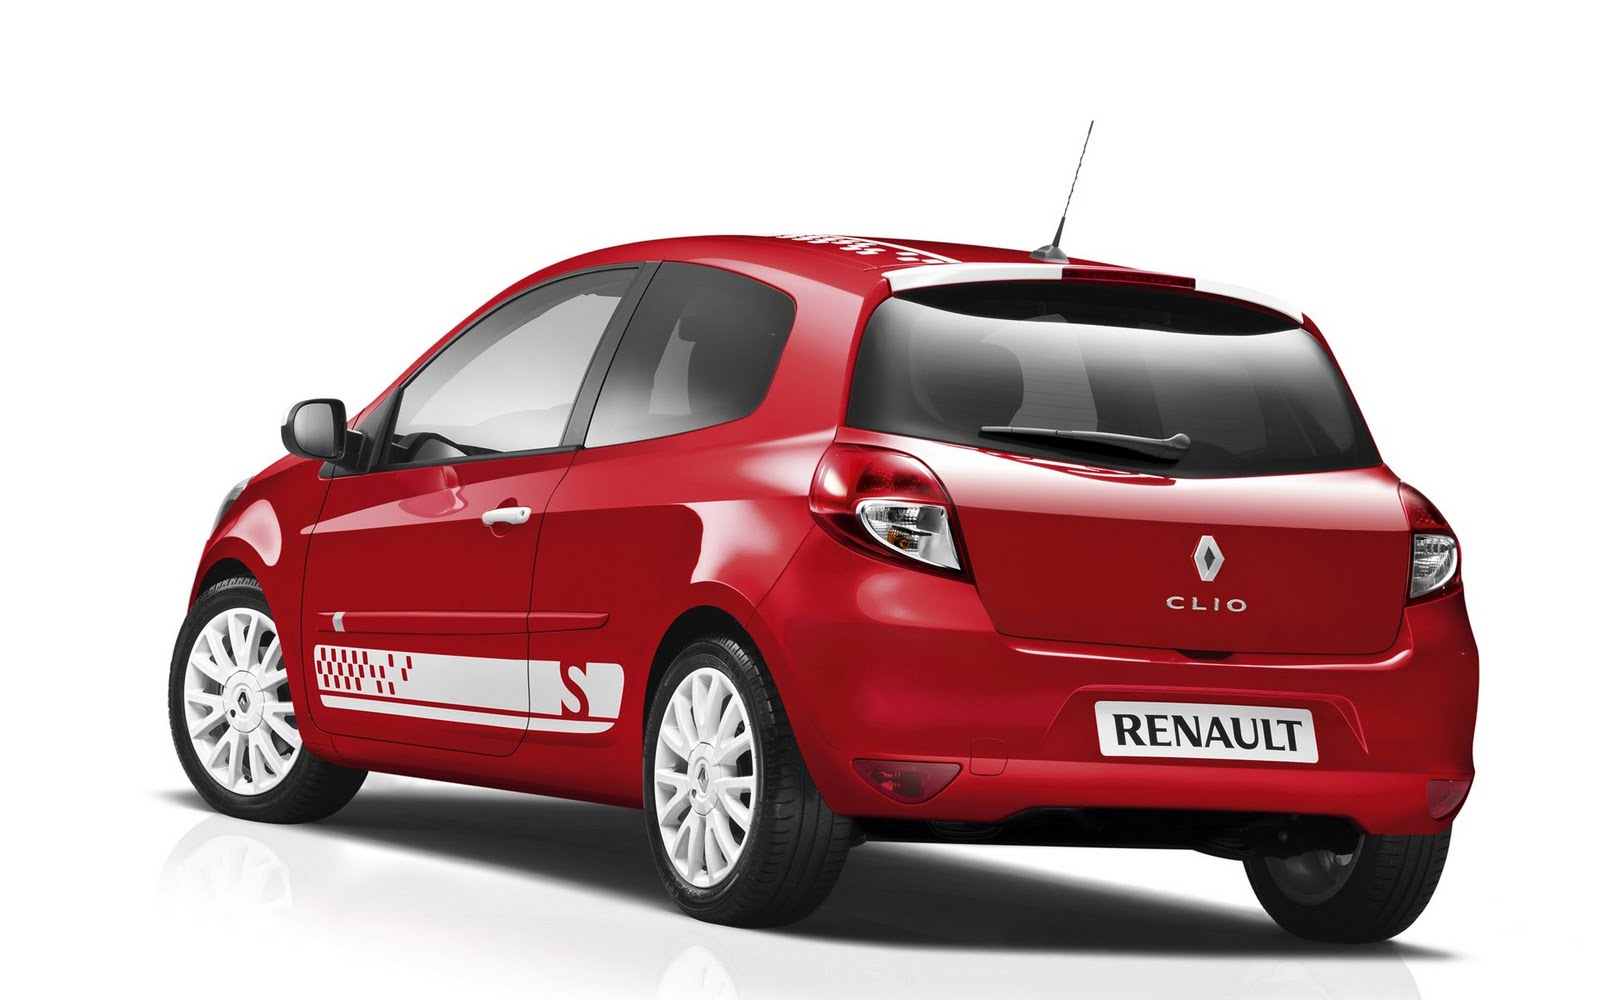 renault clio s 2010 new car modification review new car wallpaper specification car car. Black Bedroom Furniture Sets. Home Design Ideas